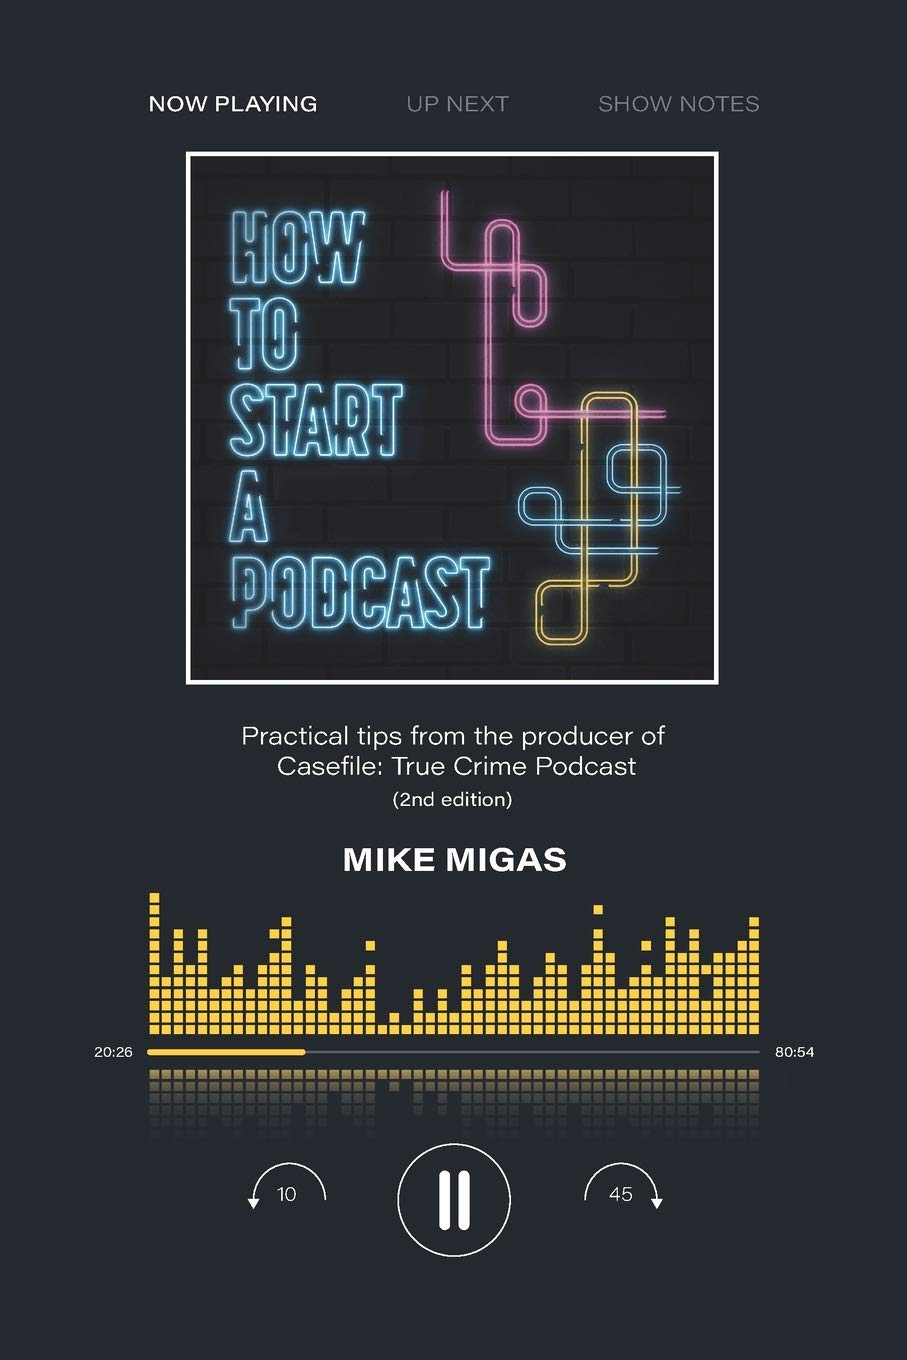 How to Start a Podcast: Practical tips from the producer of Casefile: -  Migas, Mike - Amazon.de: Bücher